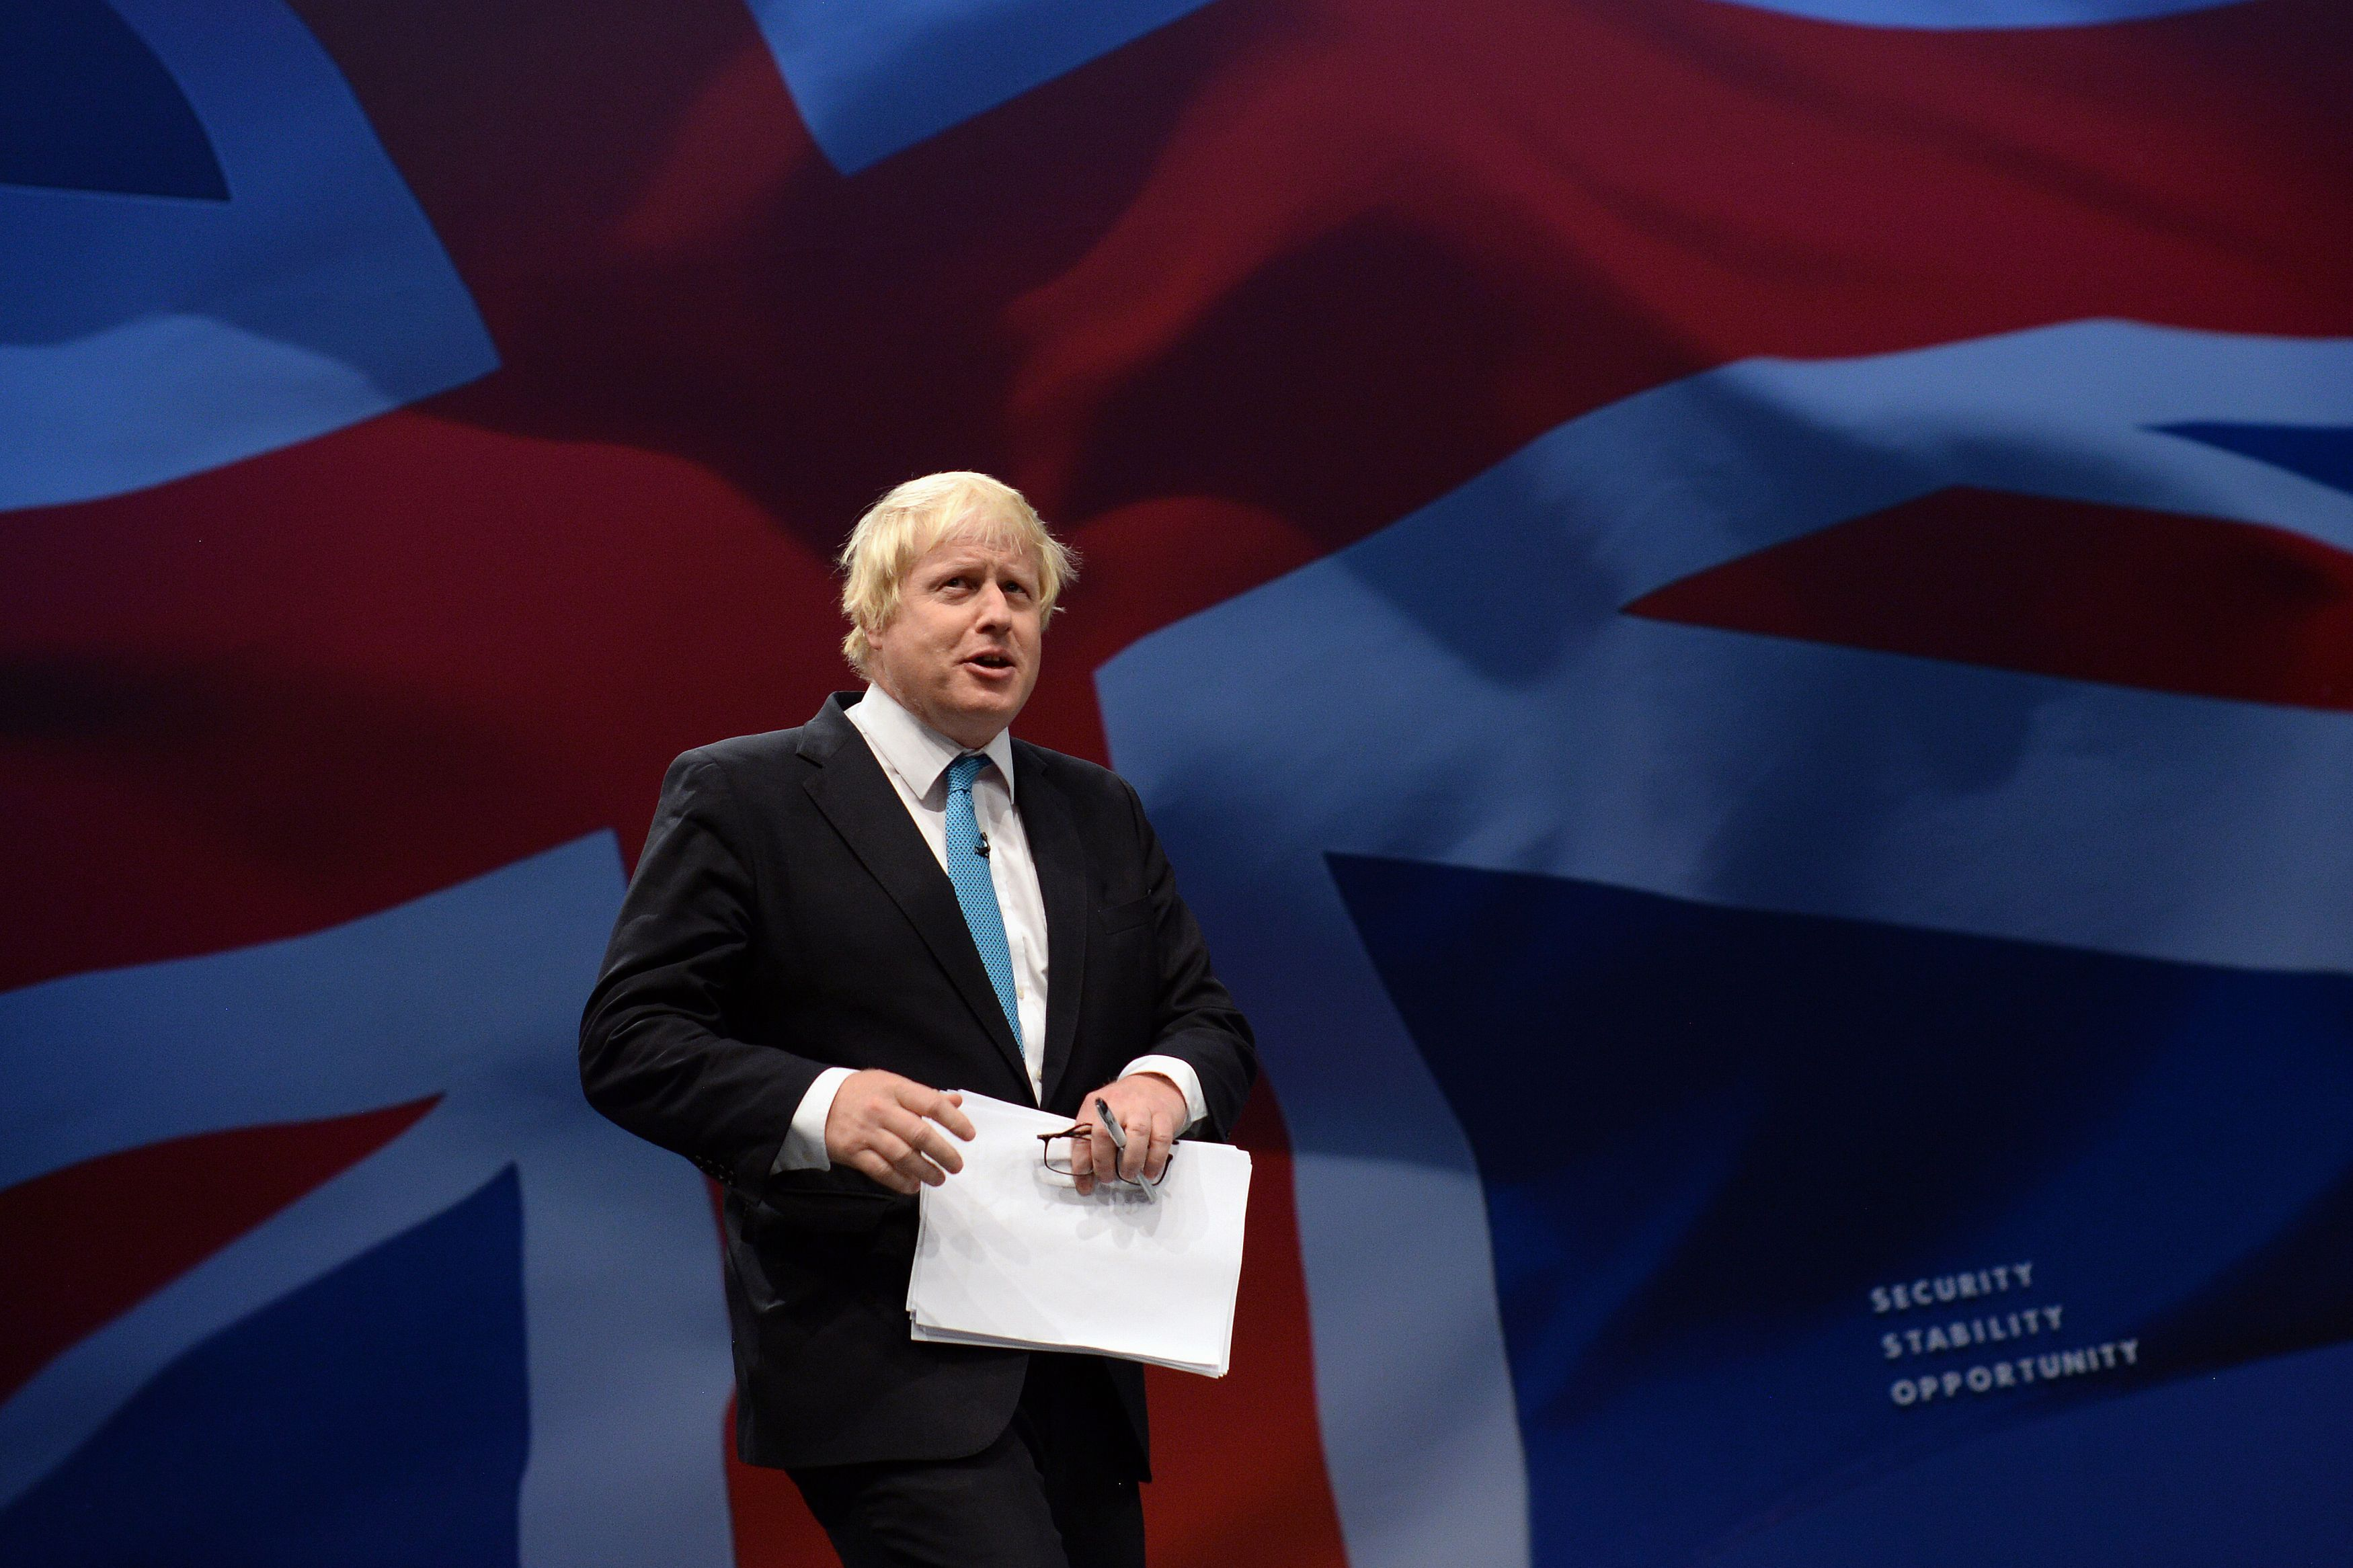 Boris Johnson, MP for Uxbridge, delivers his speech to the Conservative Party conference at Manchester Central.